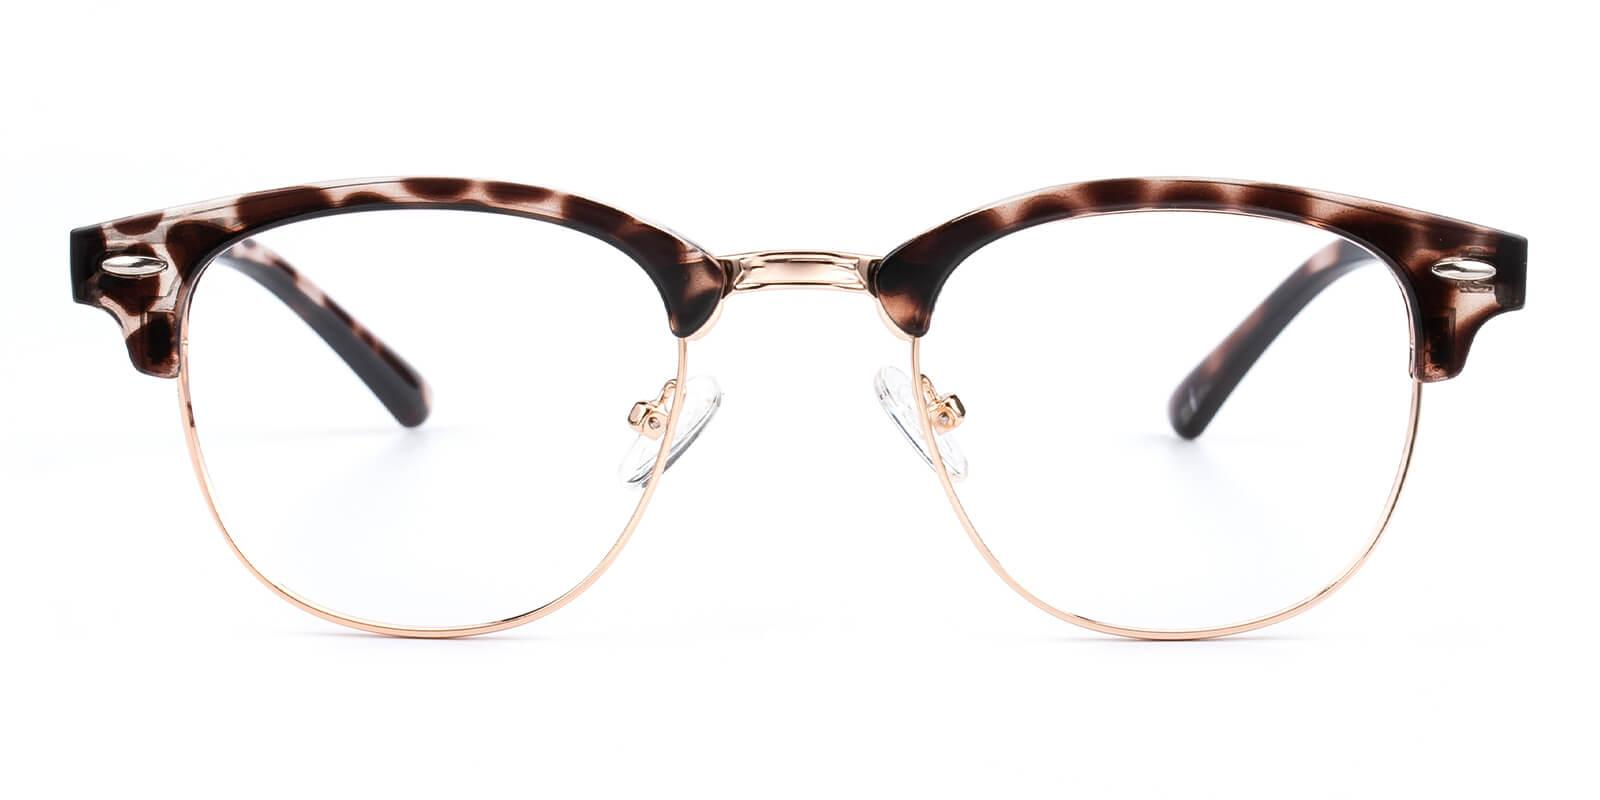 Creative-Leopard-Browline-Metal / Combination / Plastic-Eyeglasses-detail